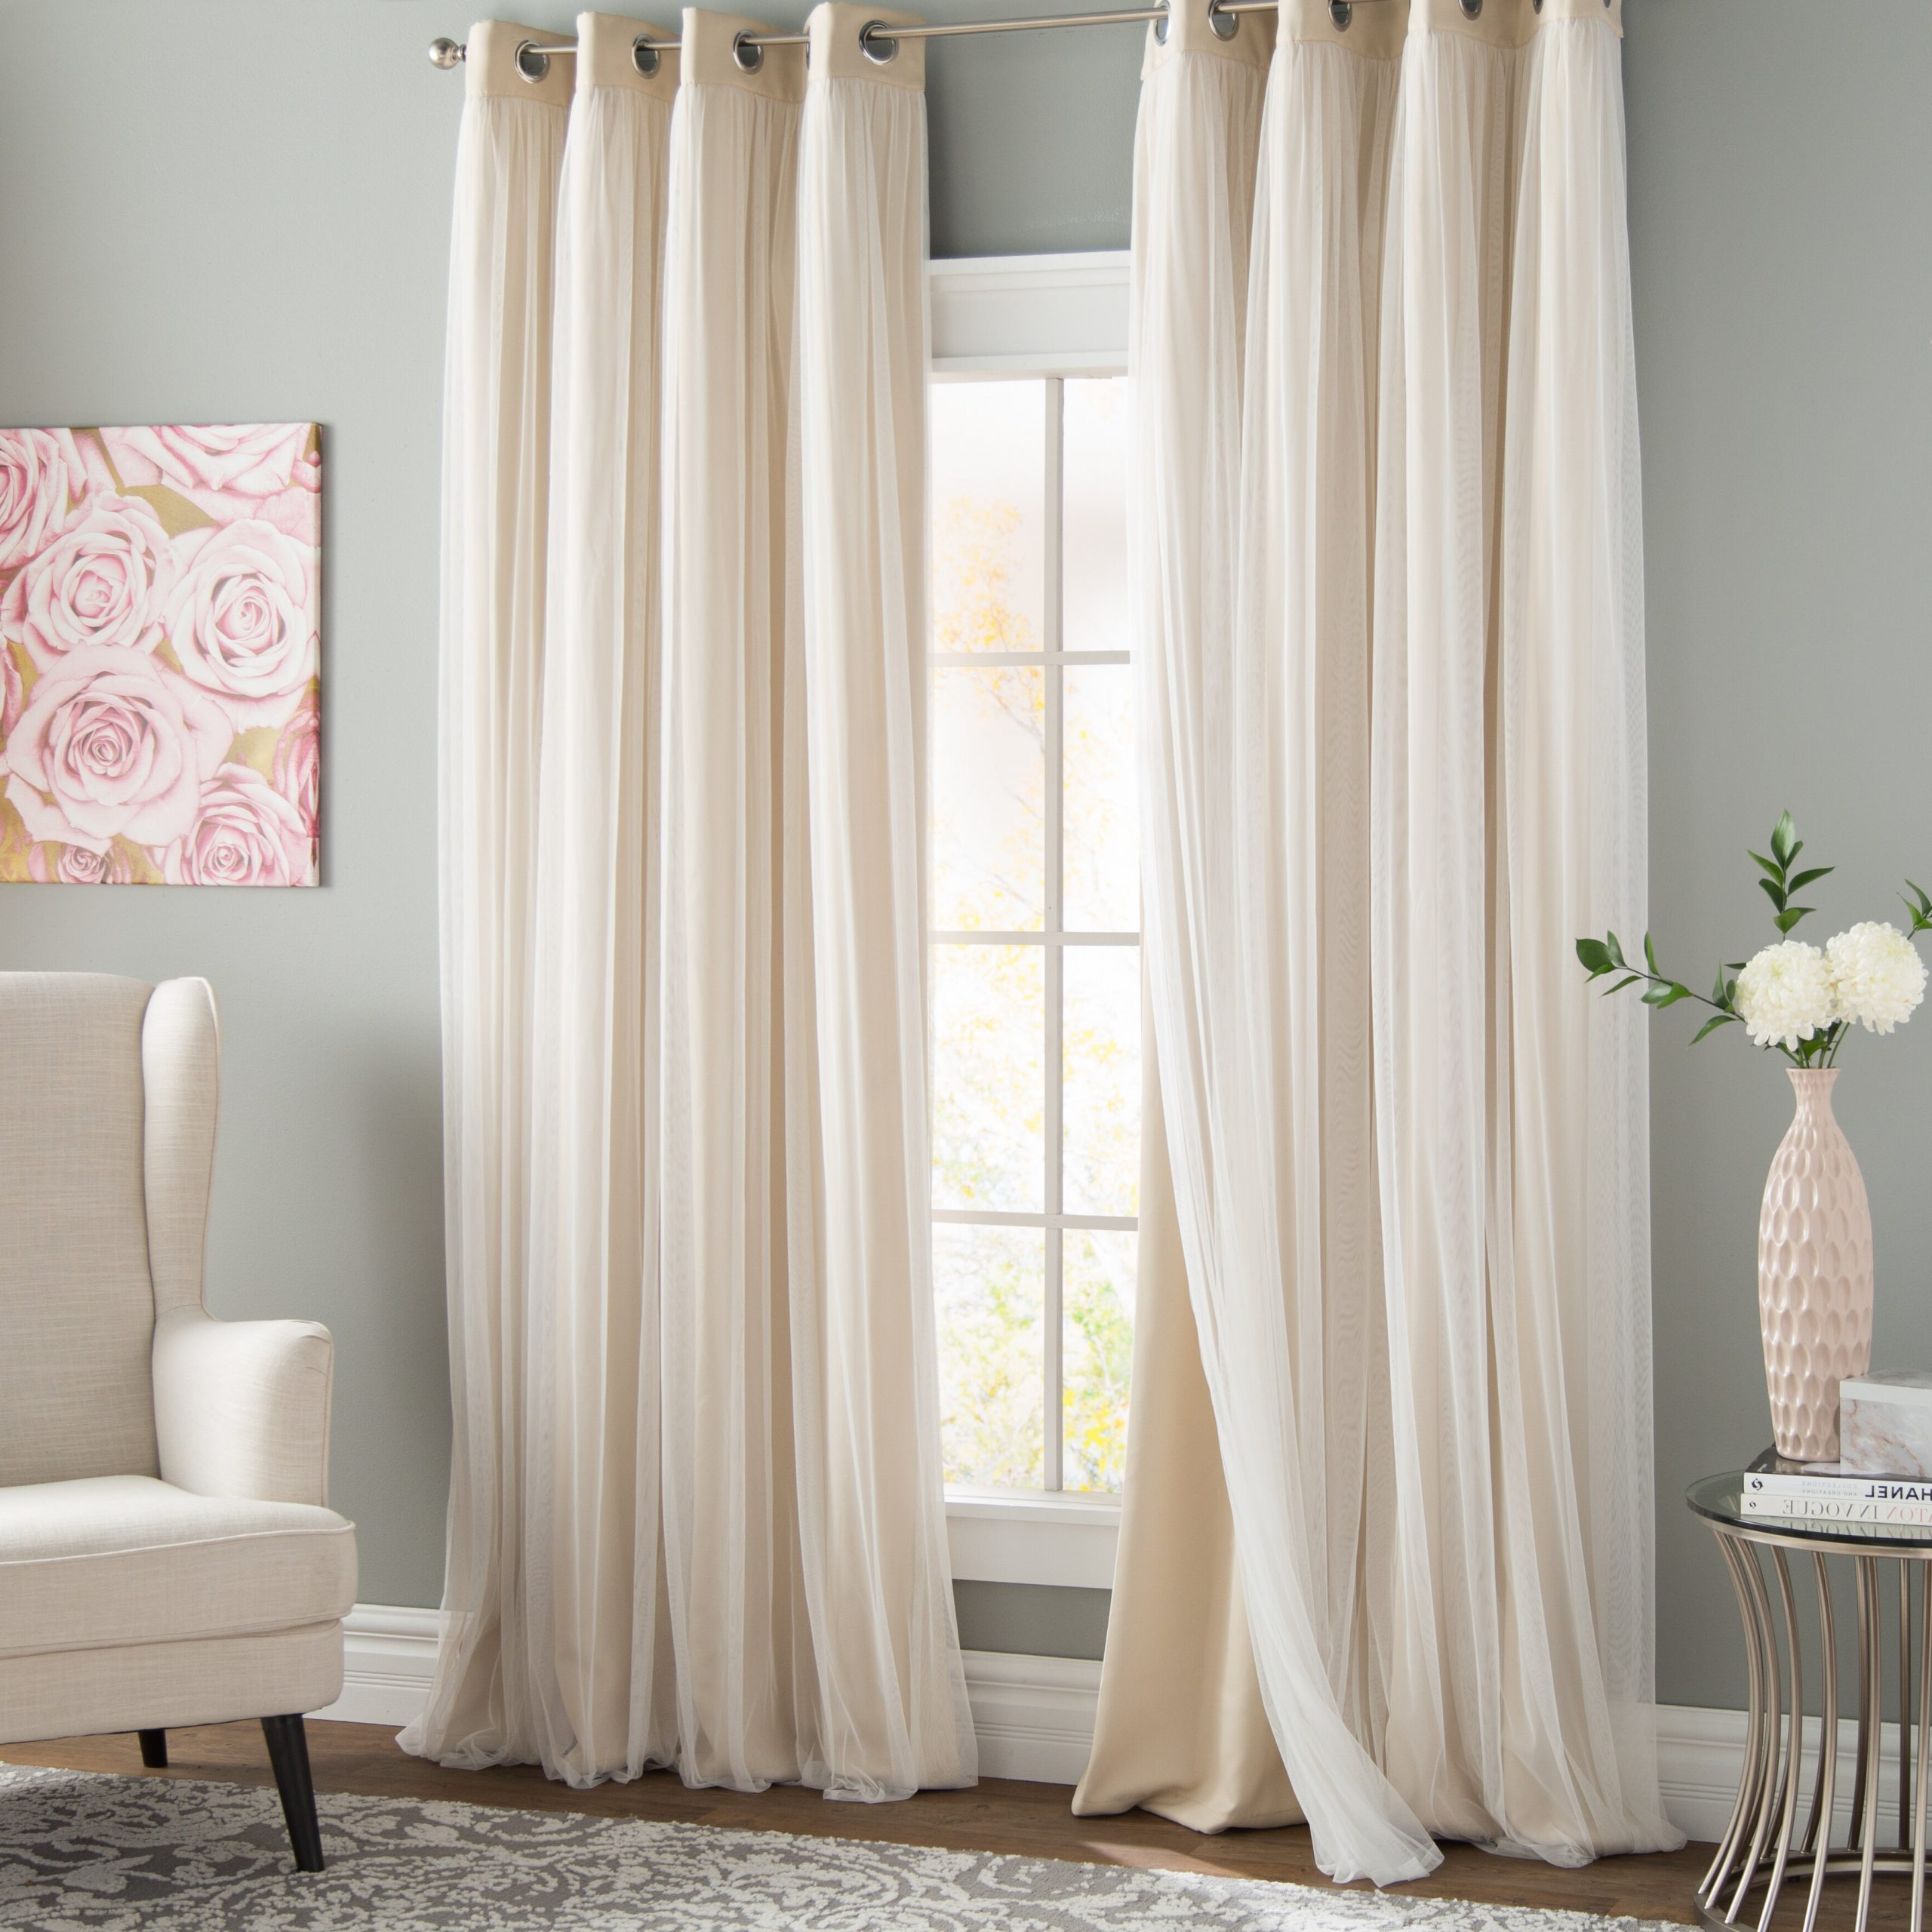 Most Recent Grommet Curtain Panels With Brockham Solid Blackout Thermal Grommet Curtain Panels (Gallery 5 of 20)